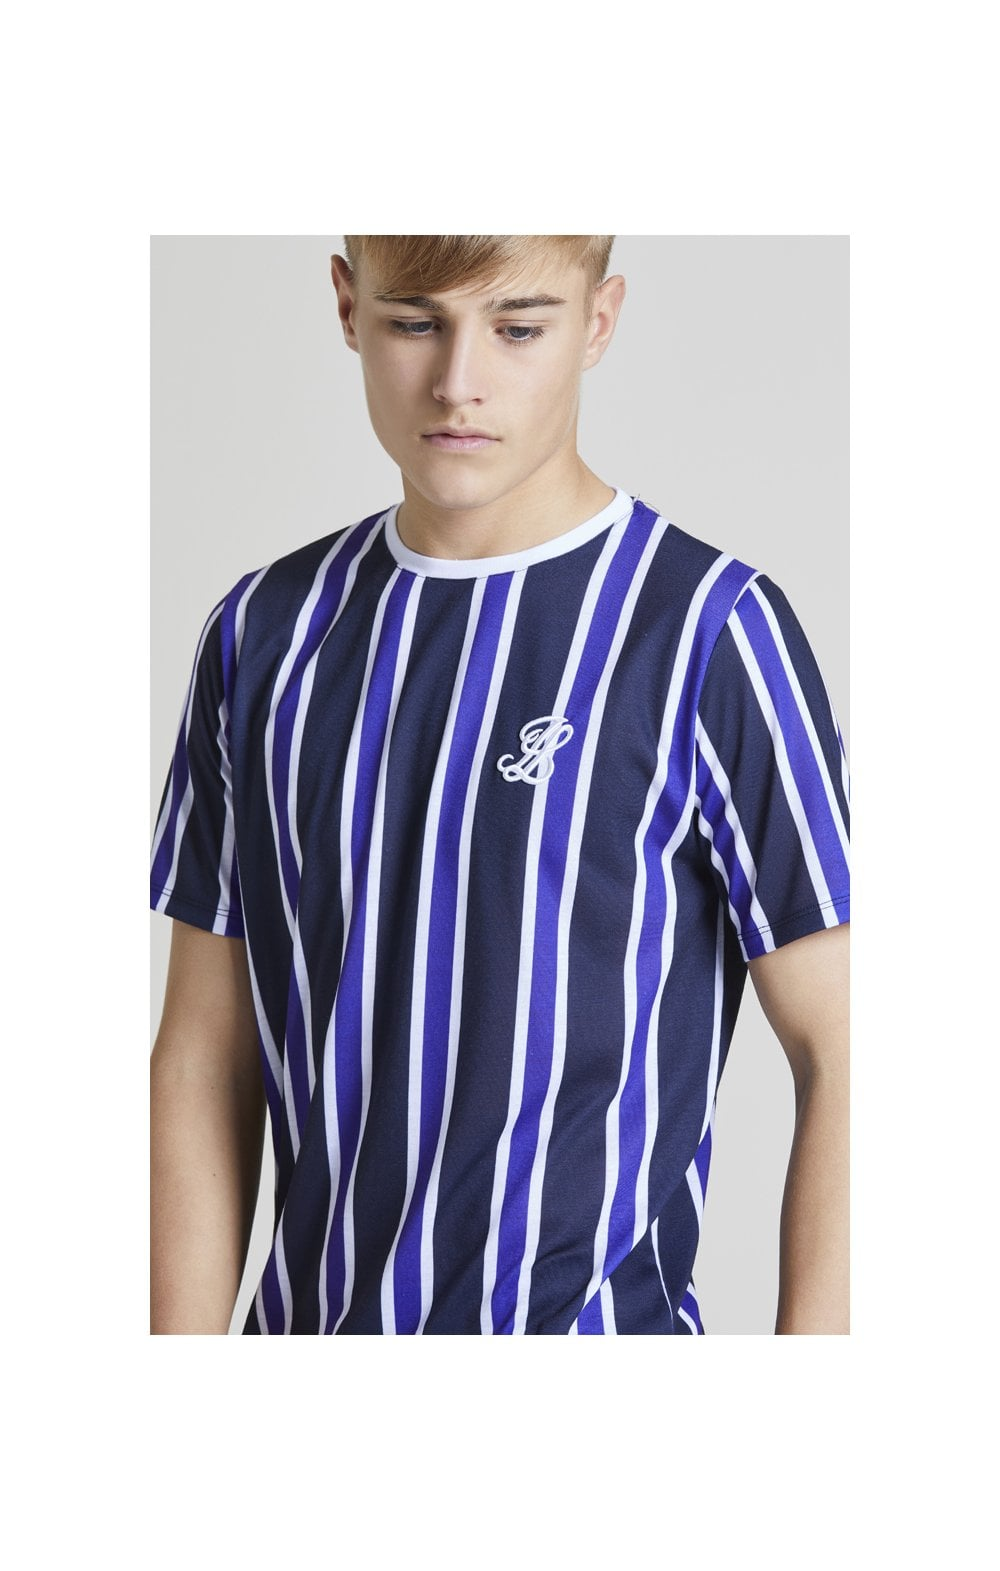 Load image into Gallery viewer, Illusive London Stripe tee - Navy, Purple & White